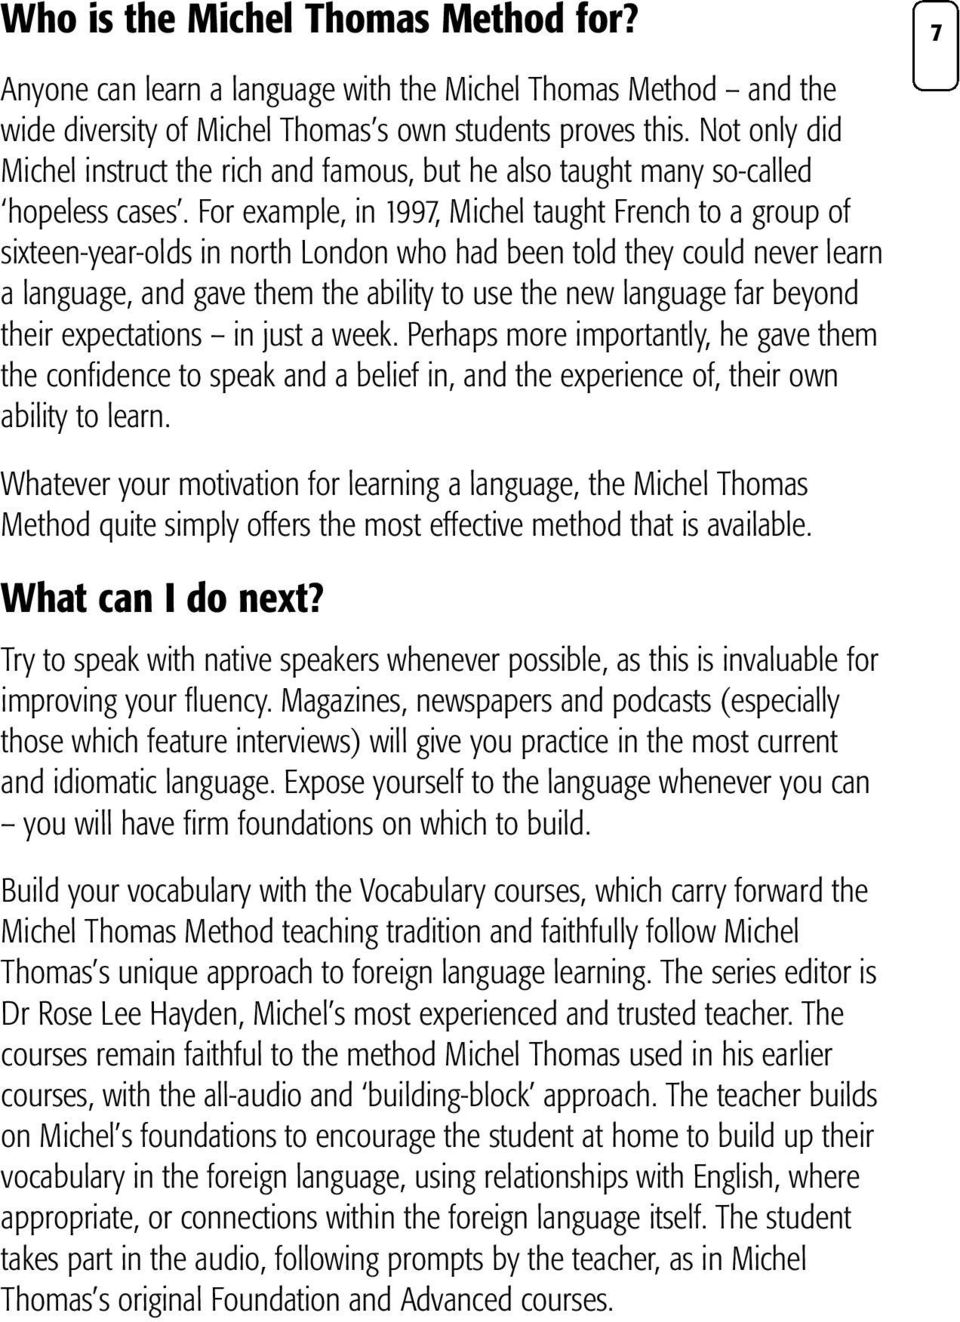 For example, in 1997, Michel taught French to a group of sixteen-year-olds in north London who had been told they could never learn a language, and gave them the ability to use the new language far